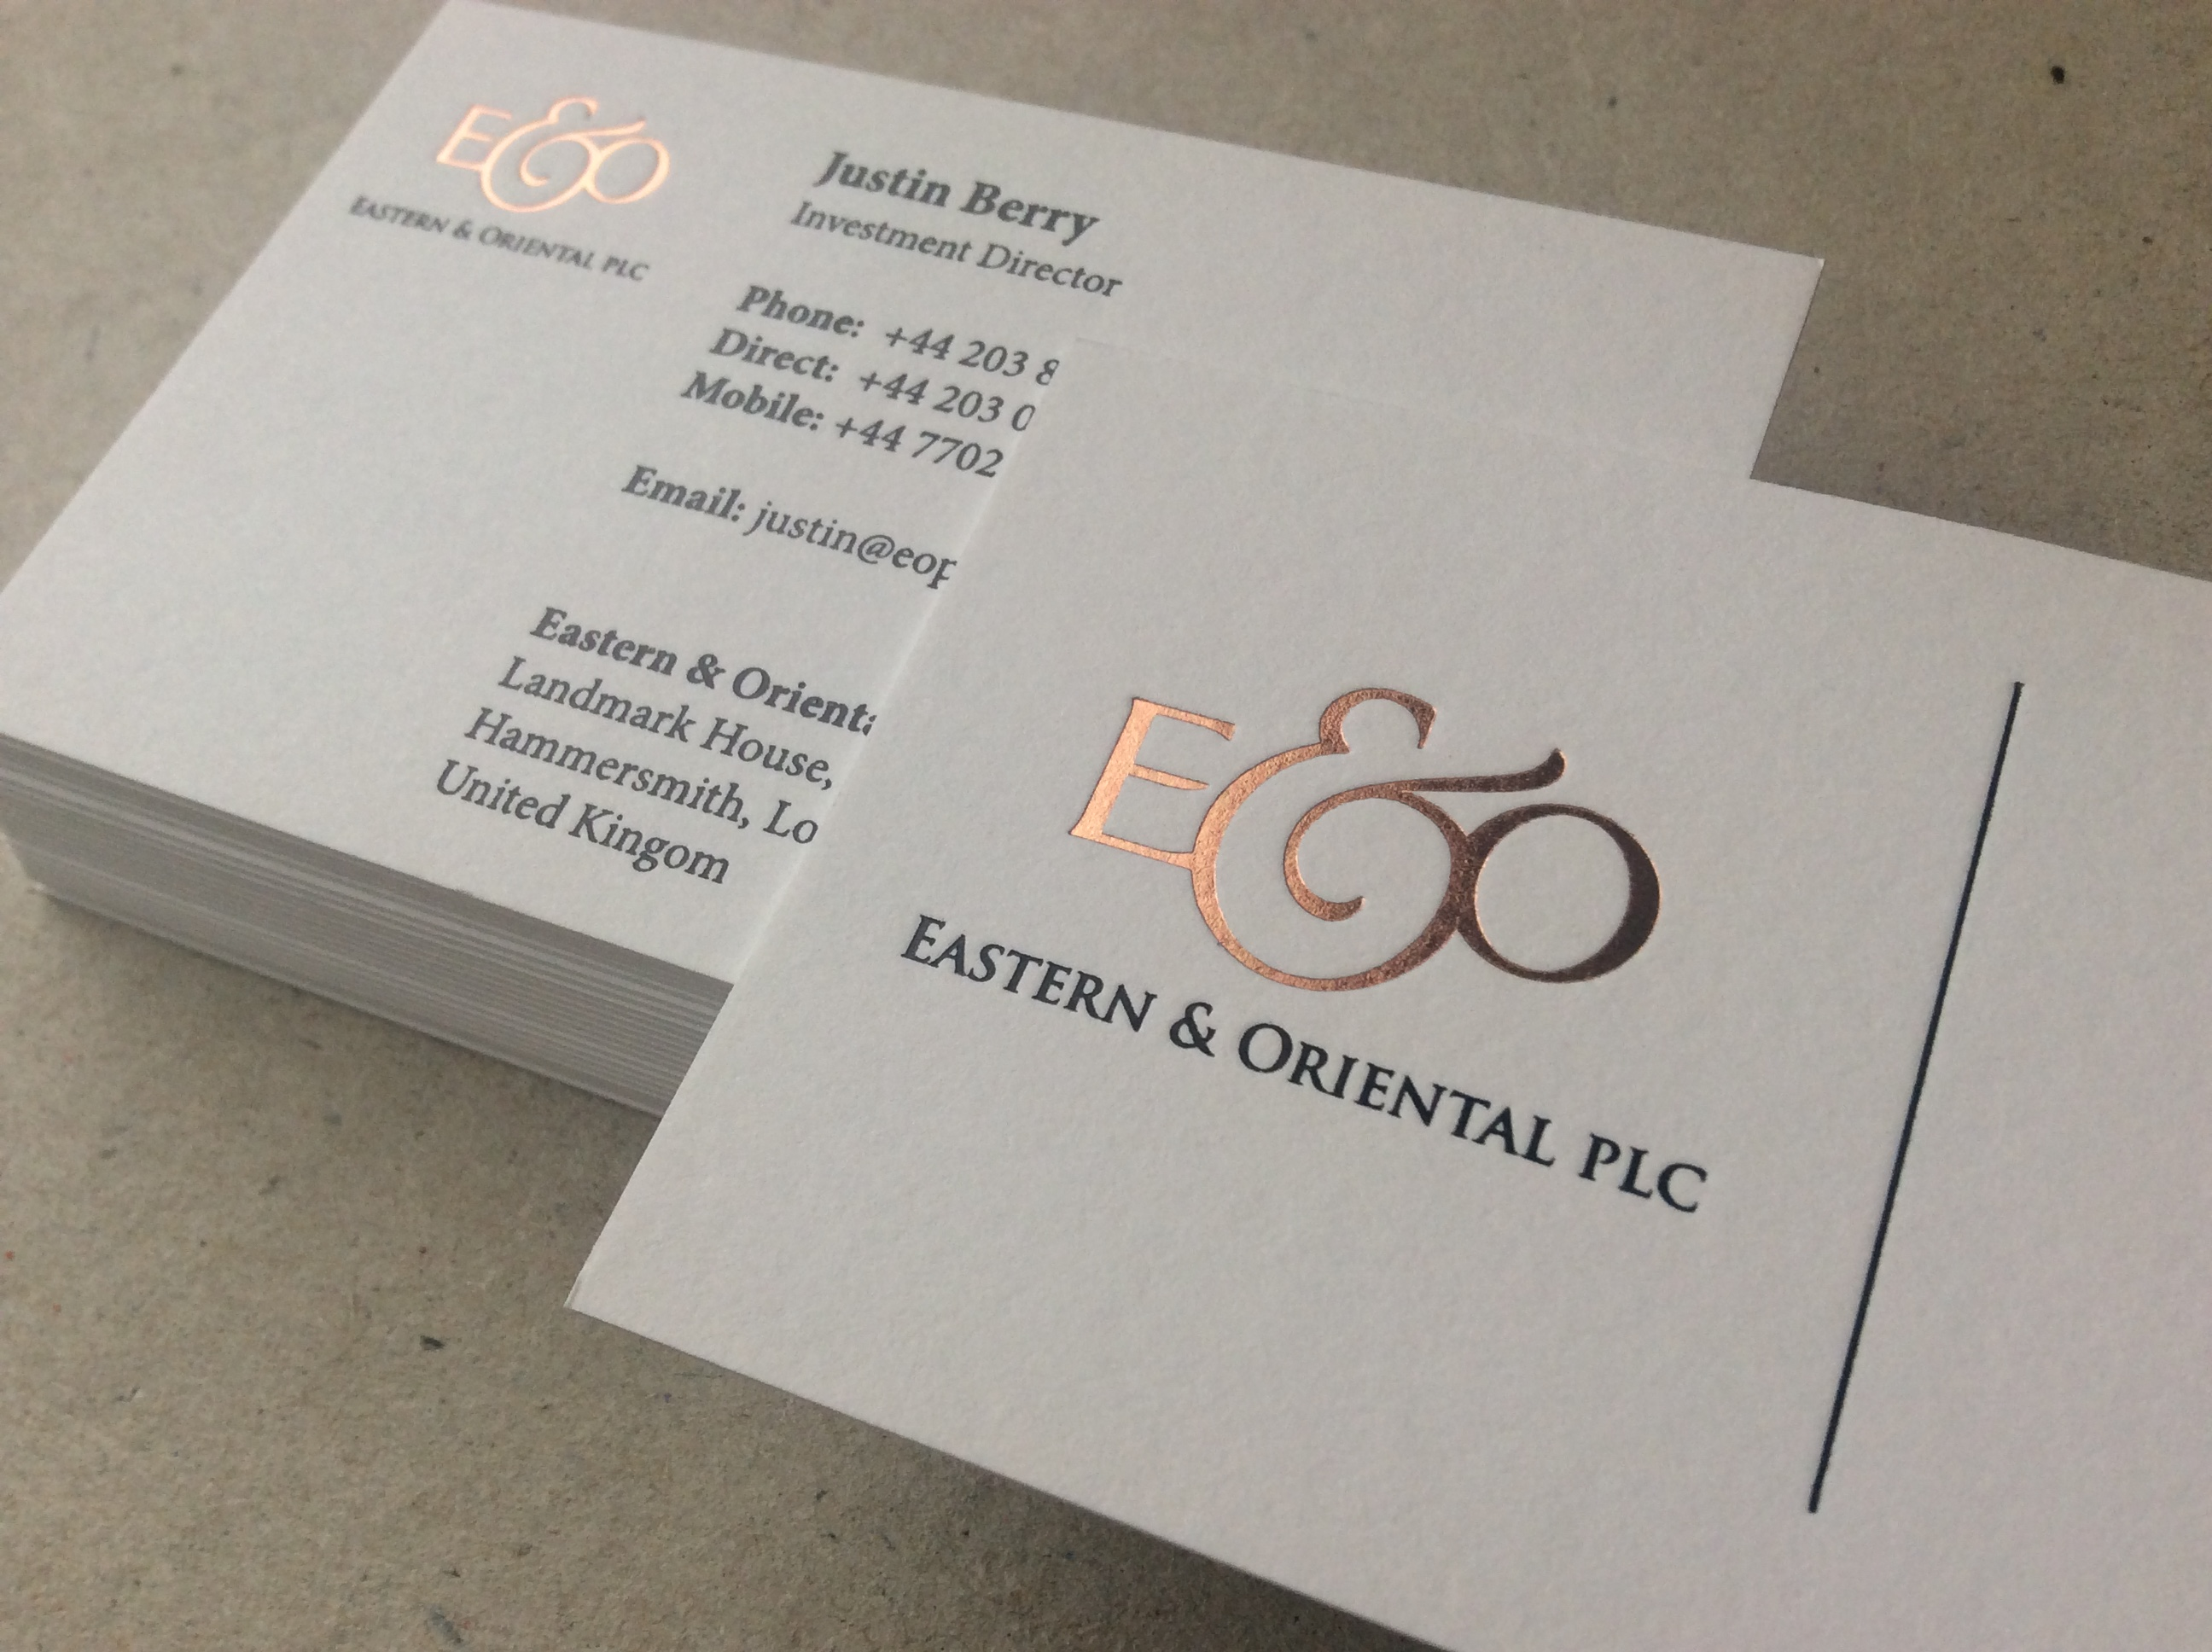 quality professional business cards